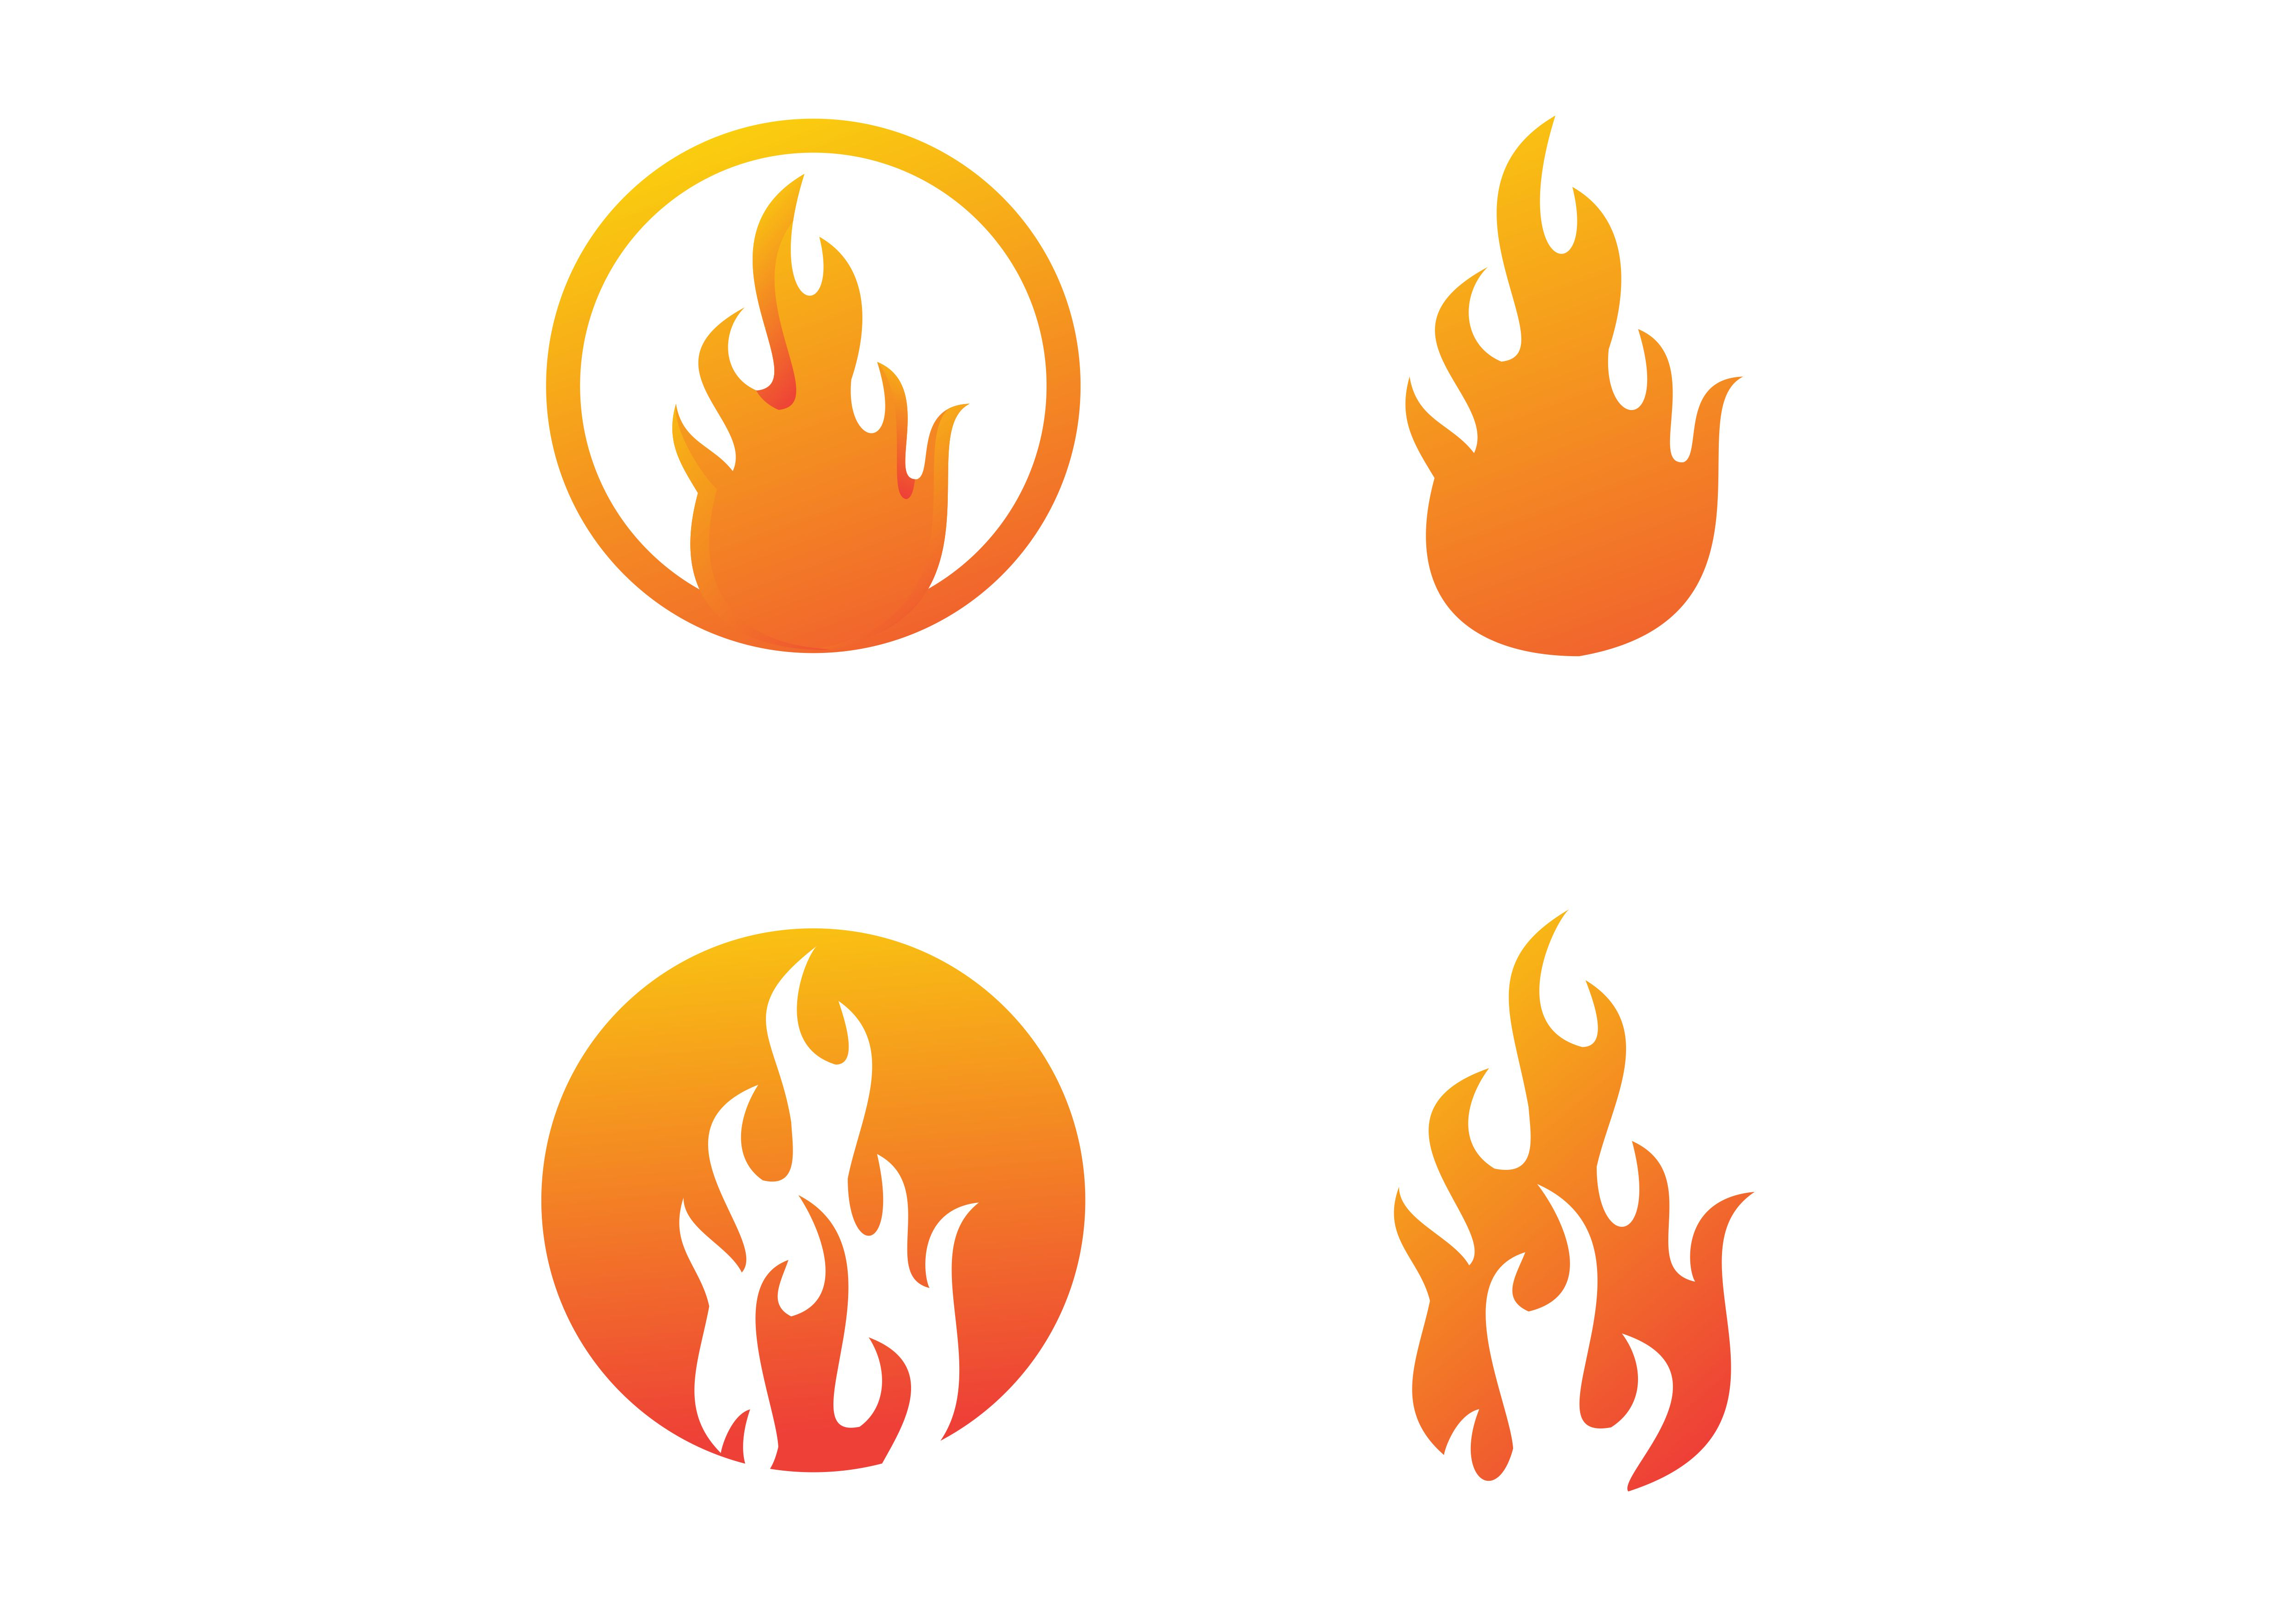 Download Free Flame Fire Logo Graphic By Deemka Studio Creative Fabrica for Cricut Explore, Silhouette and other cutting machines.